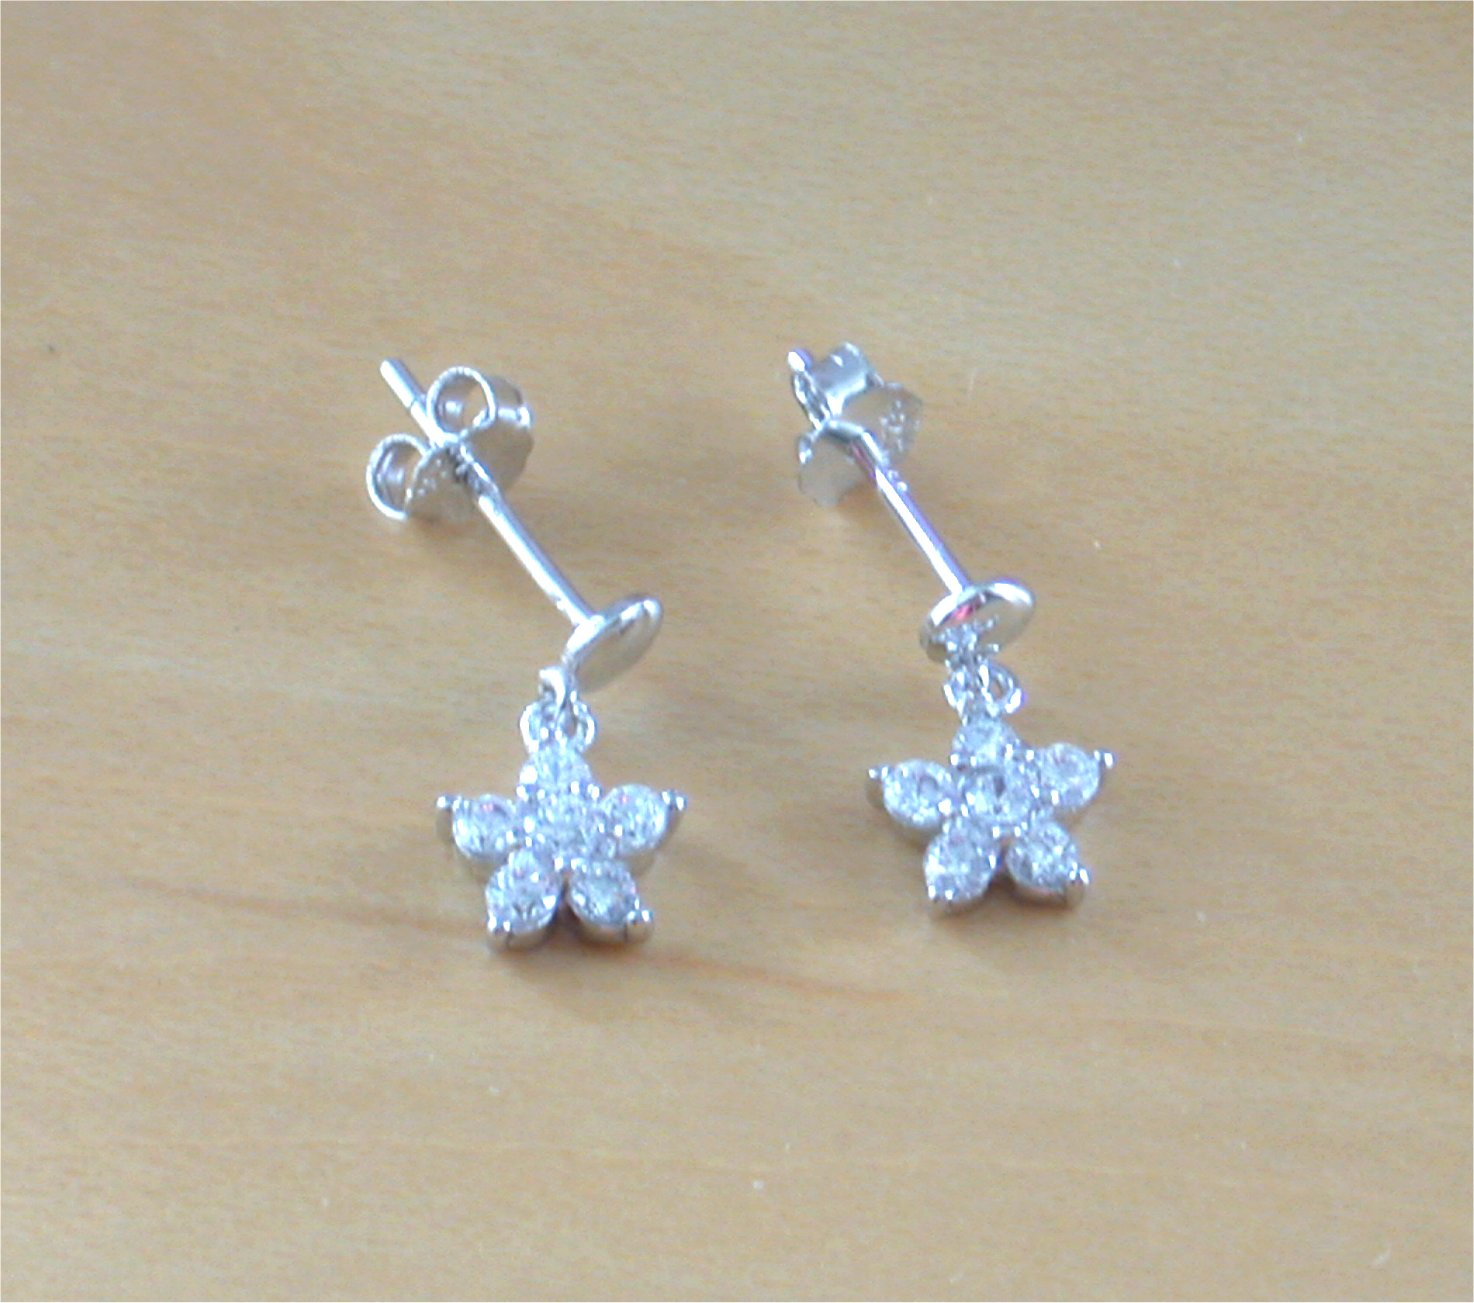 925 Silver Clear Cz Daisy Earringssmall Silver Daisy Stud Earrings